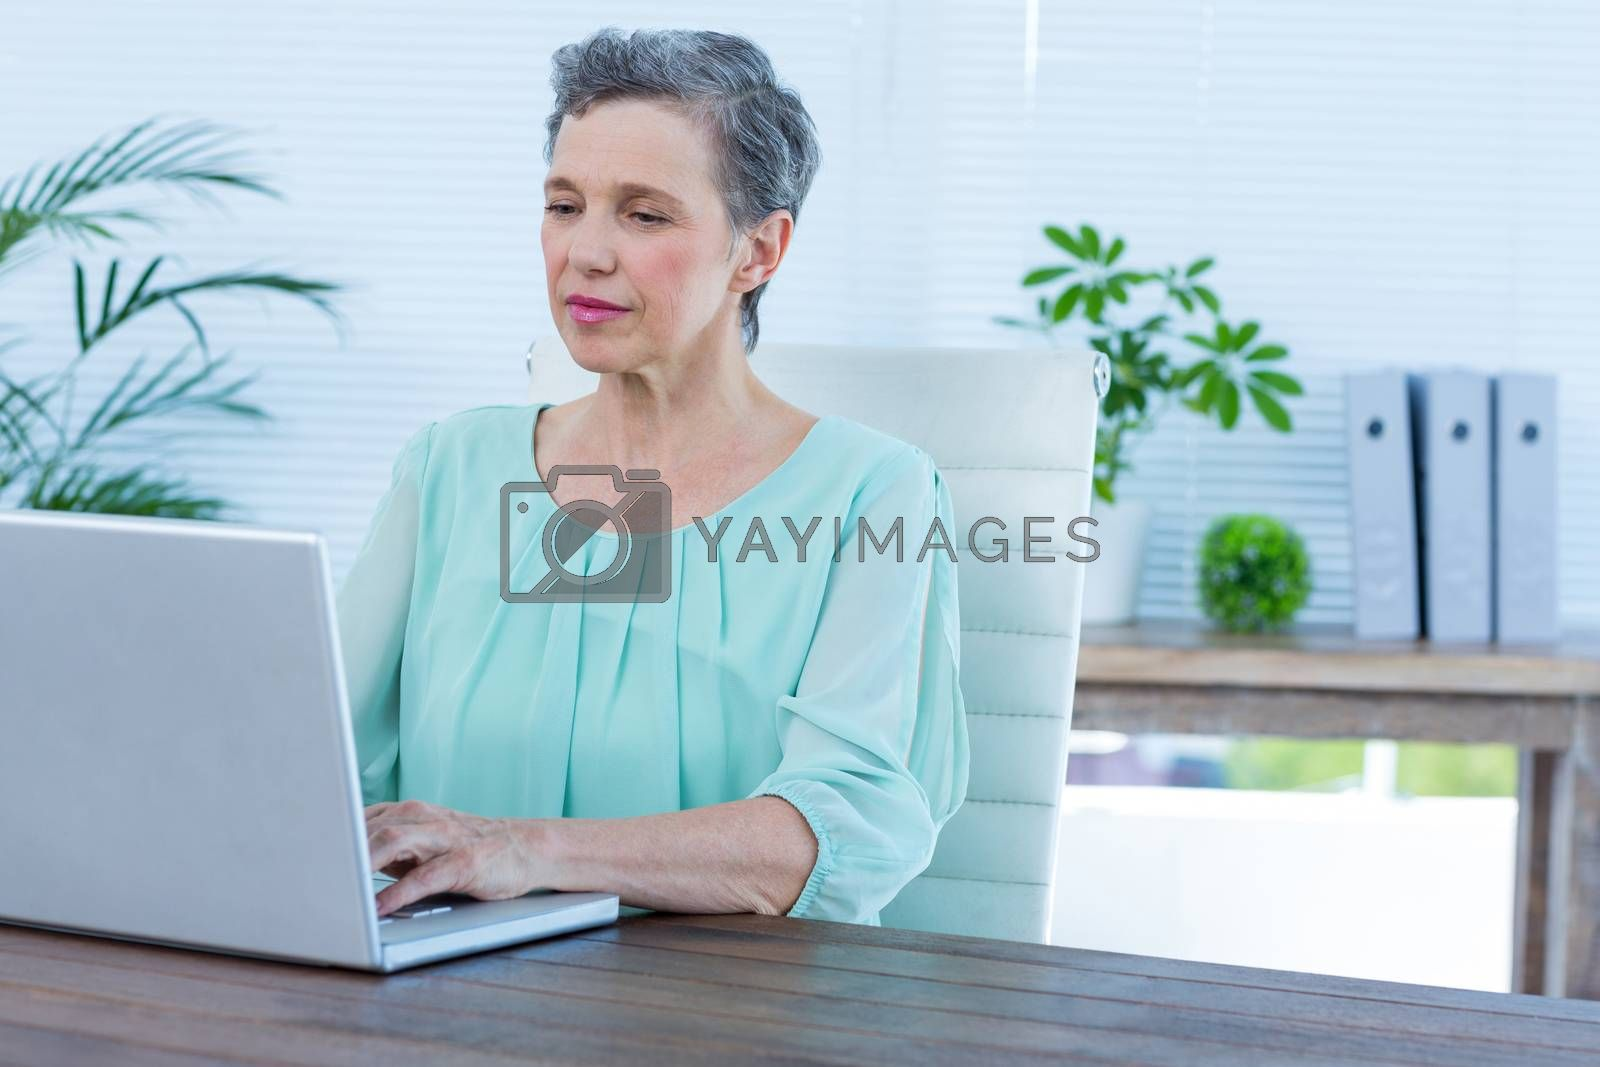 Royalty free image of Attentive businesswoman working on her laptop by Wavebreakmedia